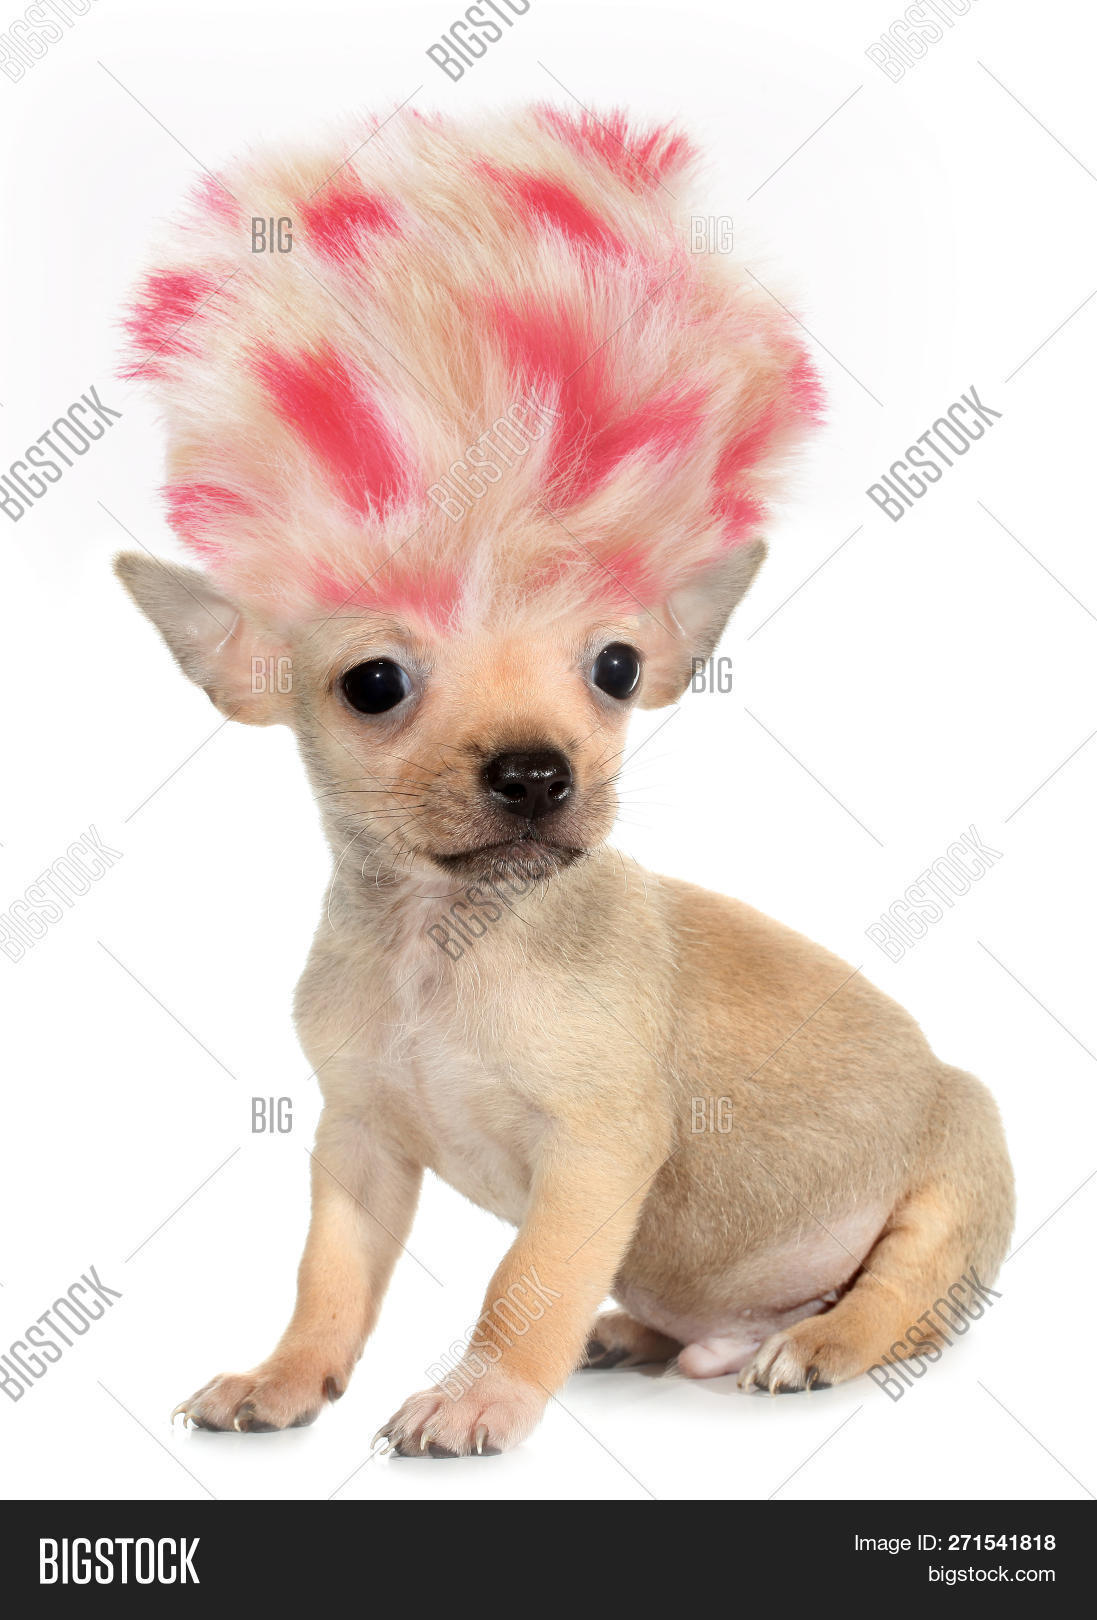 alien,animal,baby animal,baby animals,beige,breed,chihuahua,comedy,companion,concept,crazy,crazy hair,cut out,cute,cute puppy,dwarf dog,funny,genetically,genetics,gmo,hair,haircut,hilarious,idea,isolated,joke,knockabout,little,long haired,long-haired,lovely,modified,on white,pet,pink,poster,puppy,ridiculously,small,smallest,smallest dog,the smallest,toy dog,troll,troll dog,troll hair,vertical,white background,wig